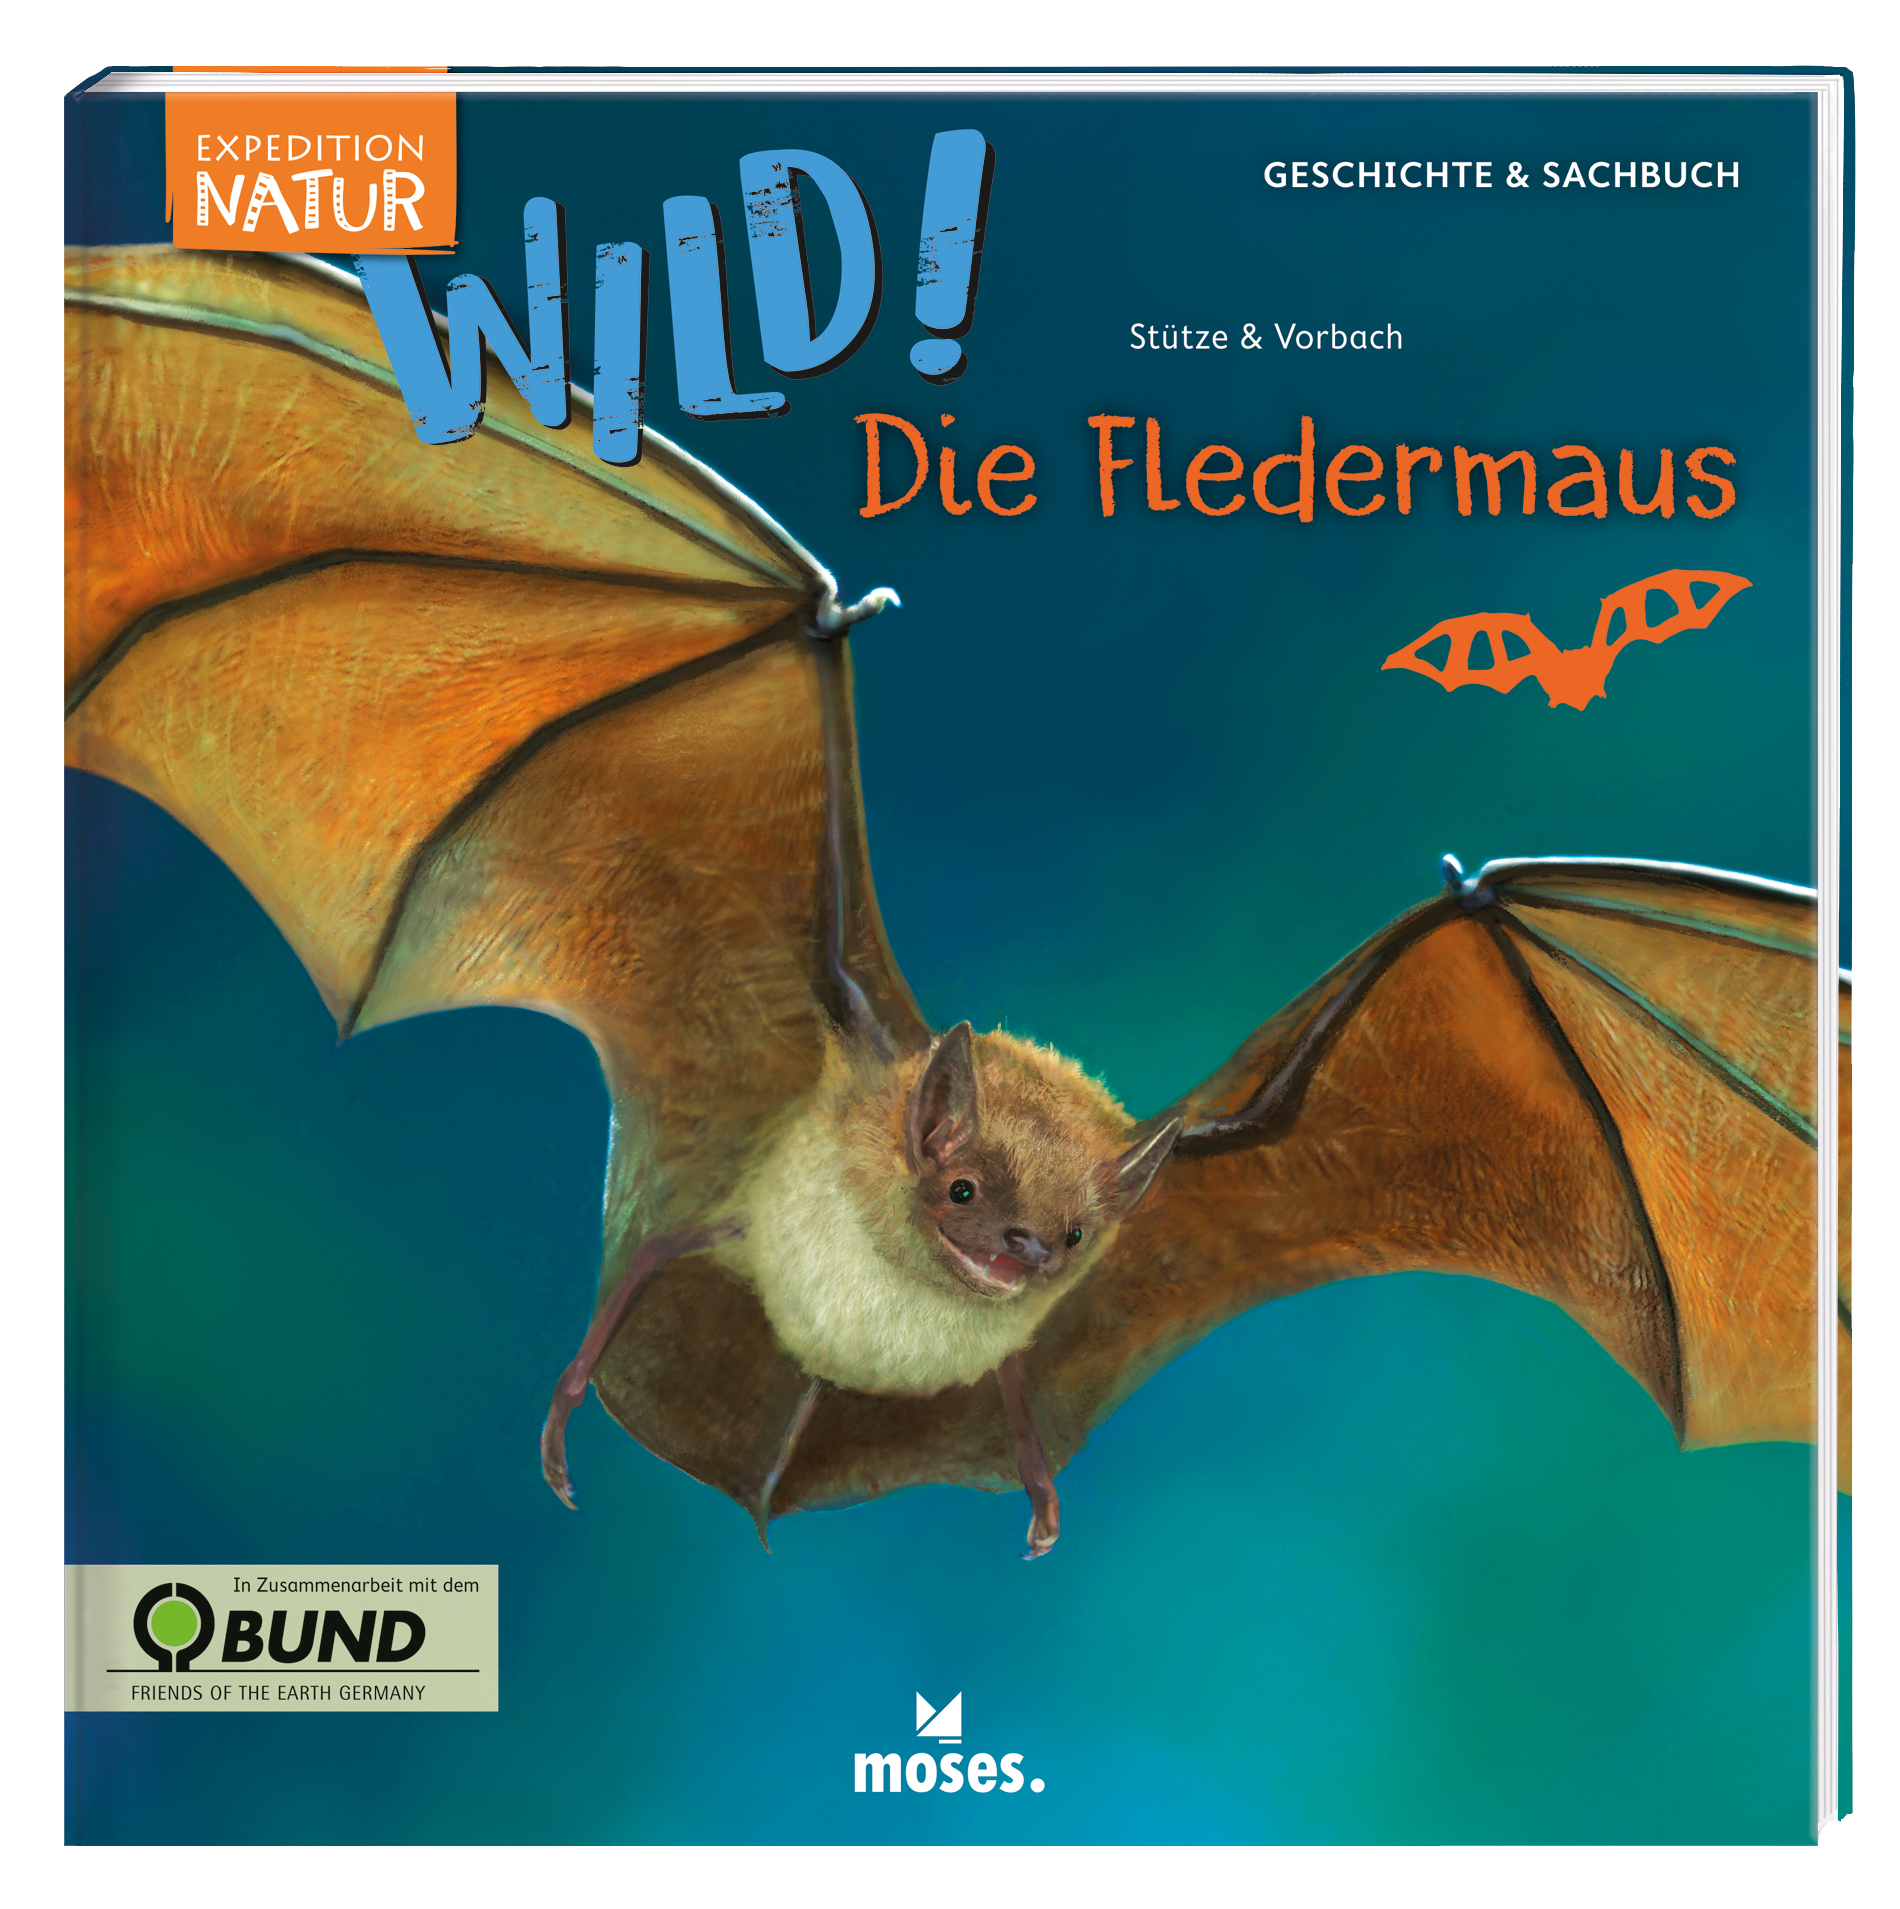 Expedition Natur: WILD! Die Fledermaus